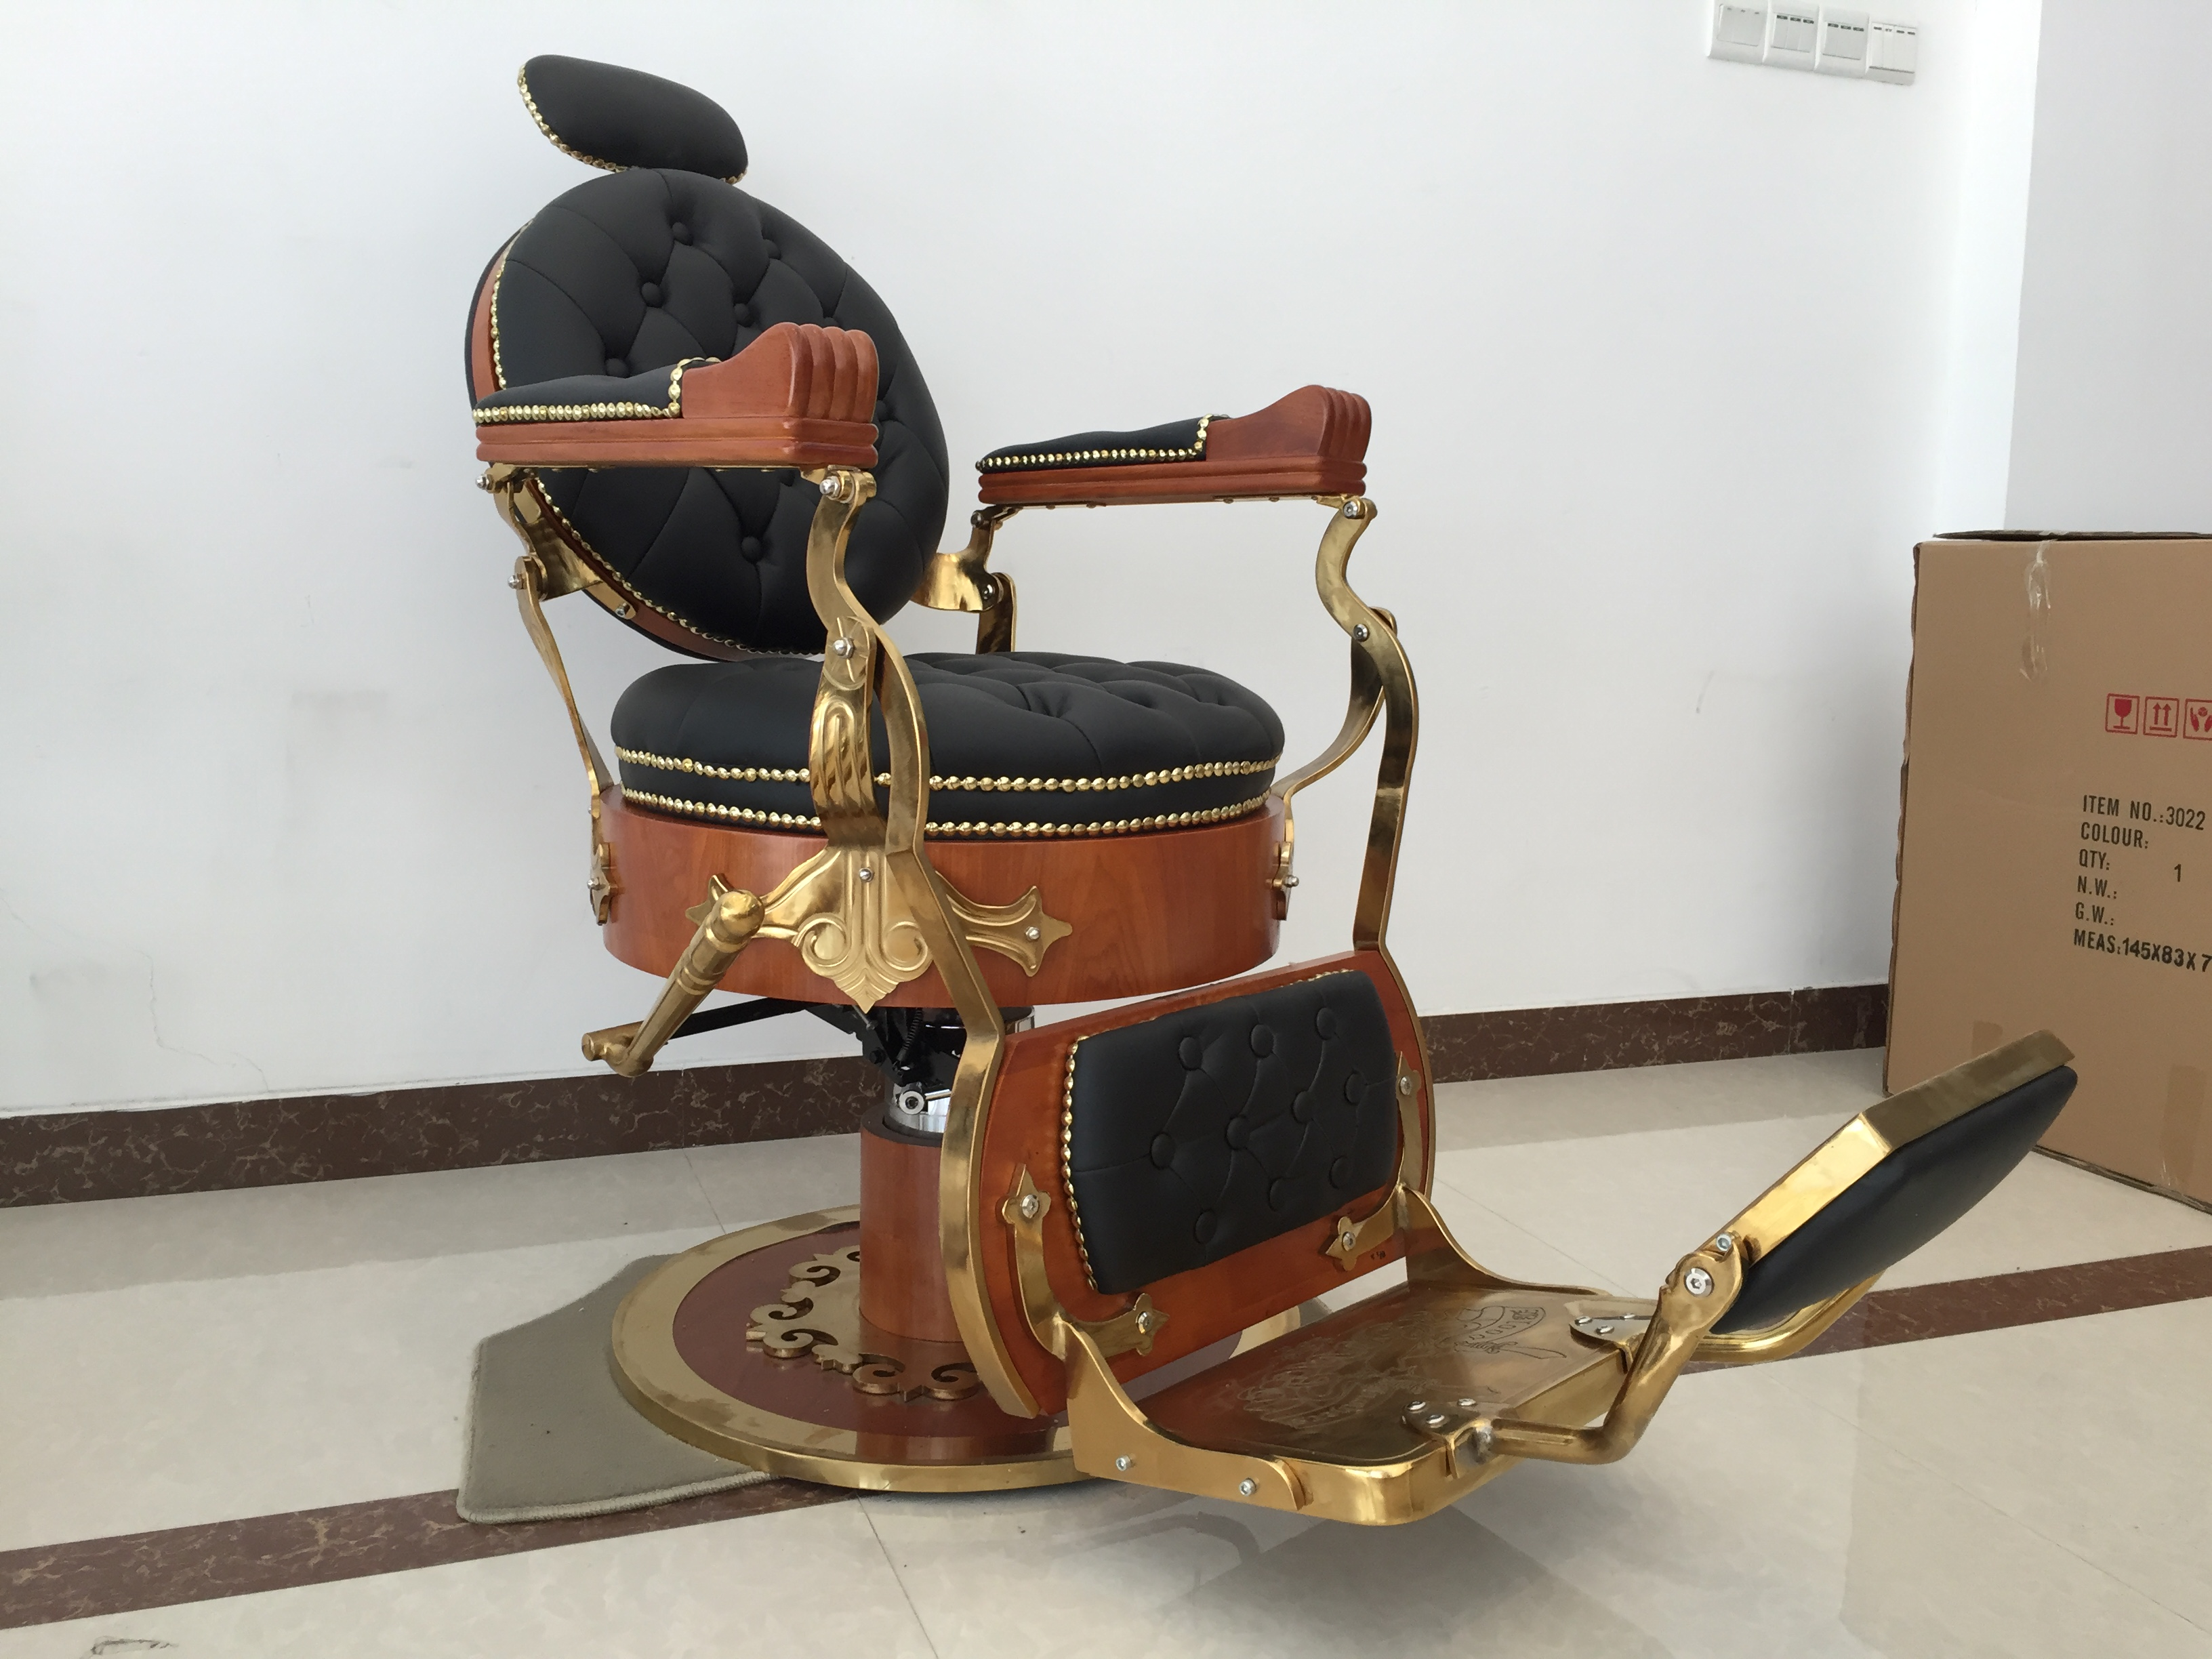 Doshower vintage barber chair for sale with old school style hairdressing chair for hair salon